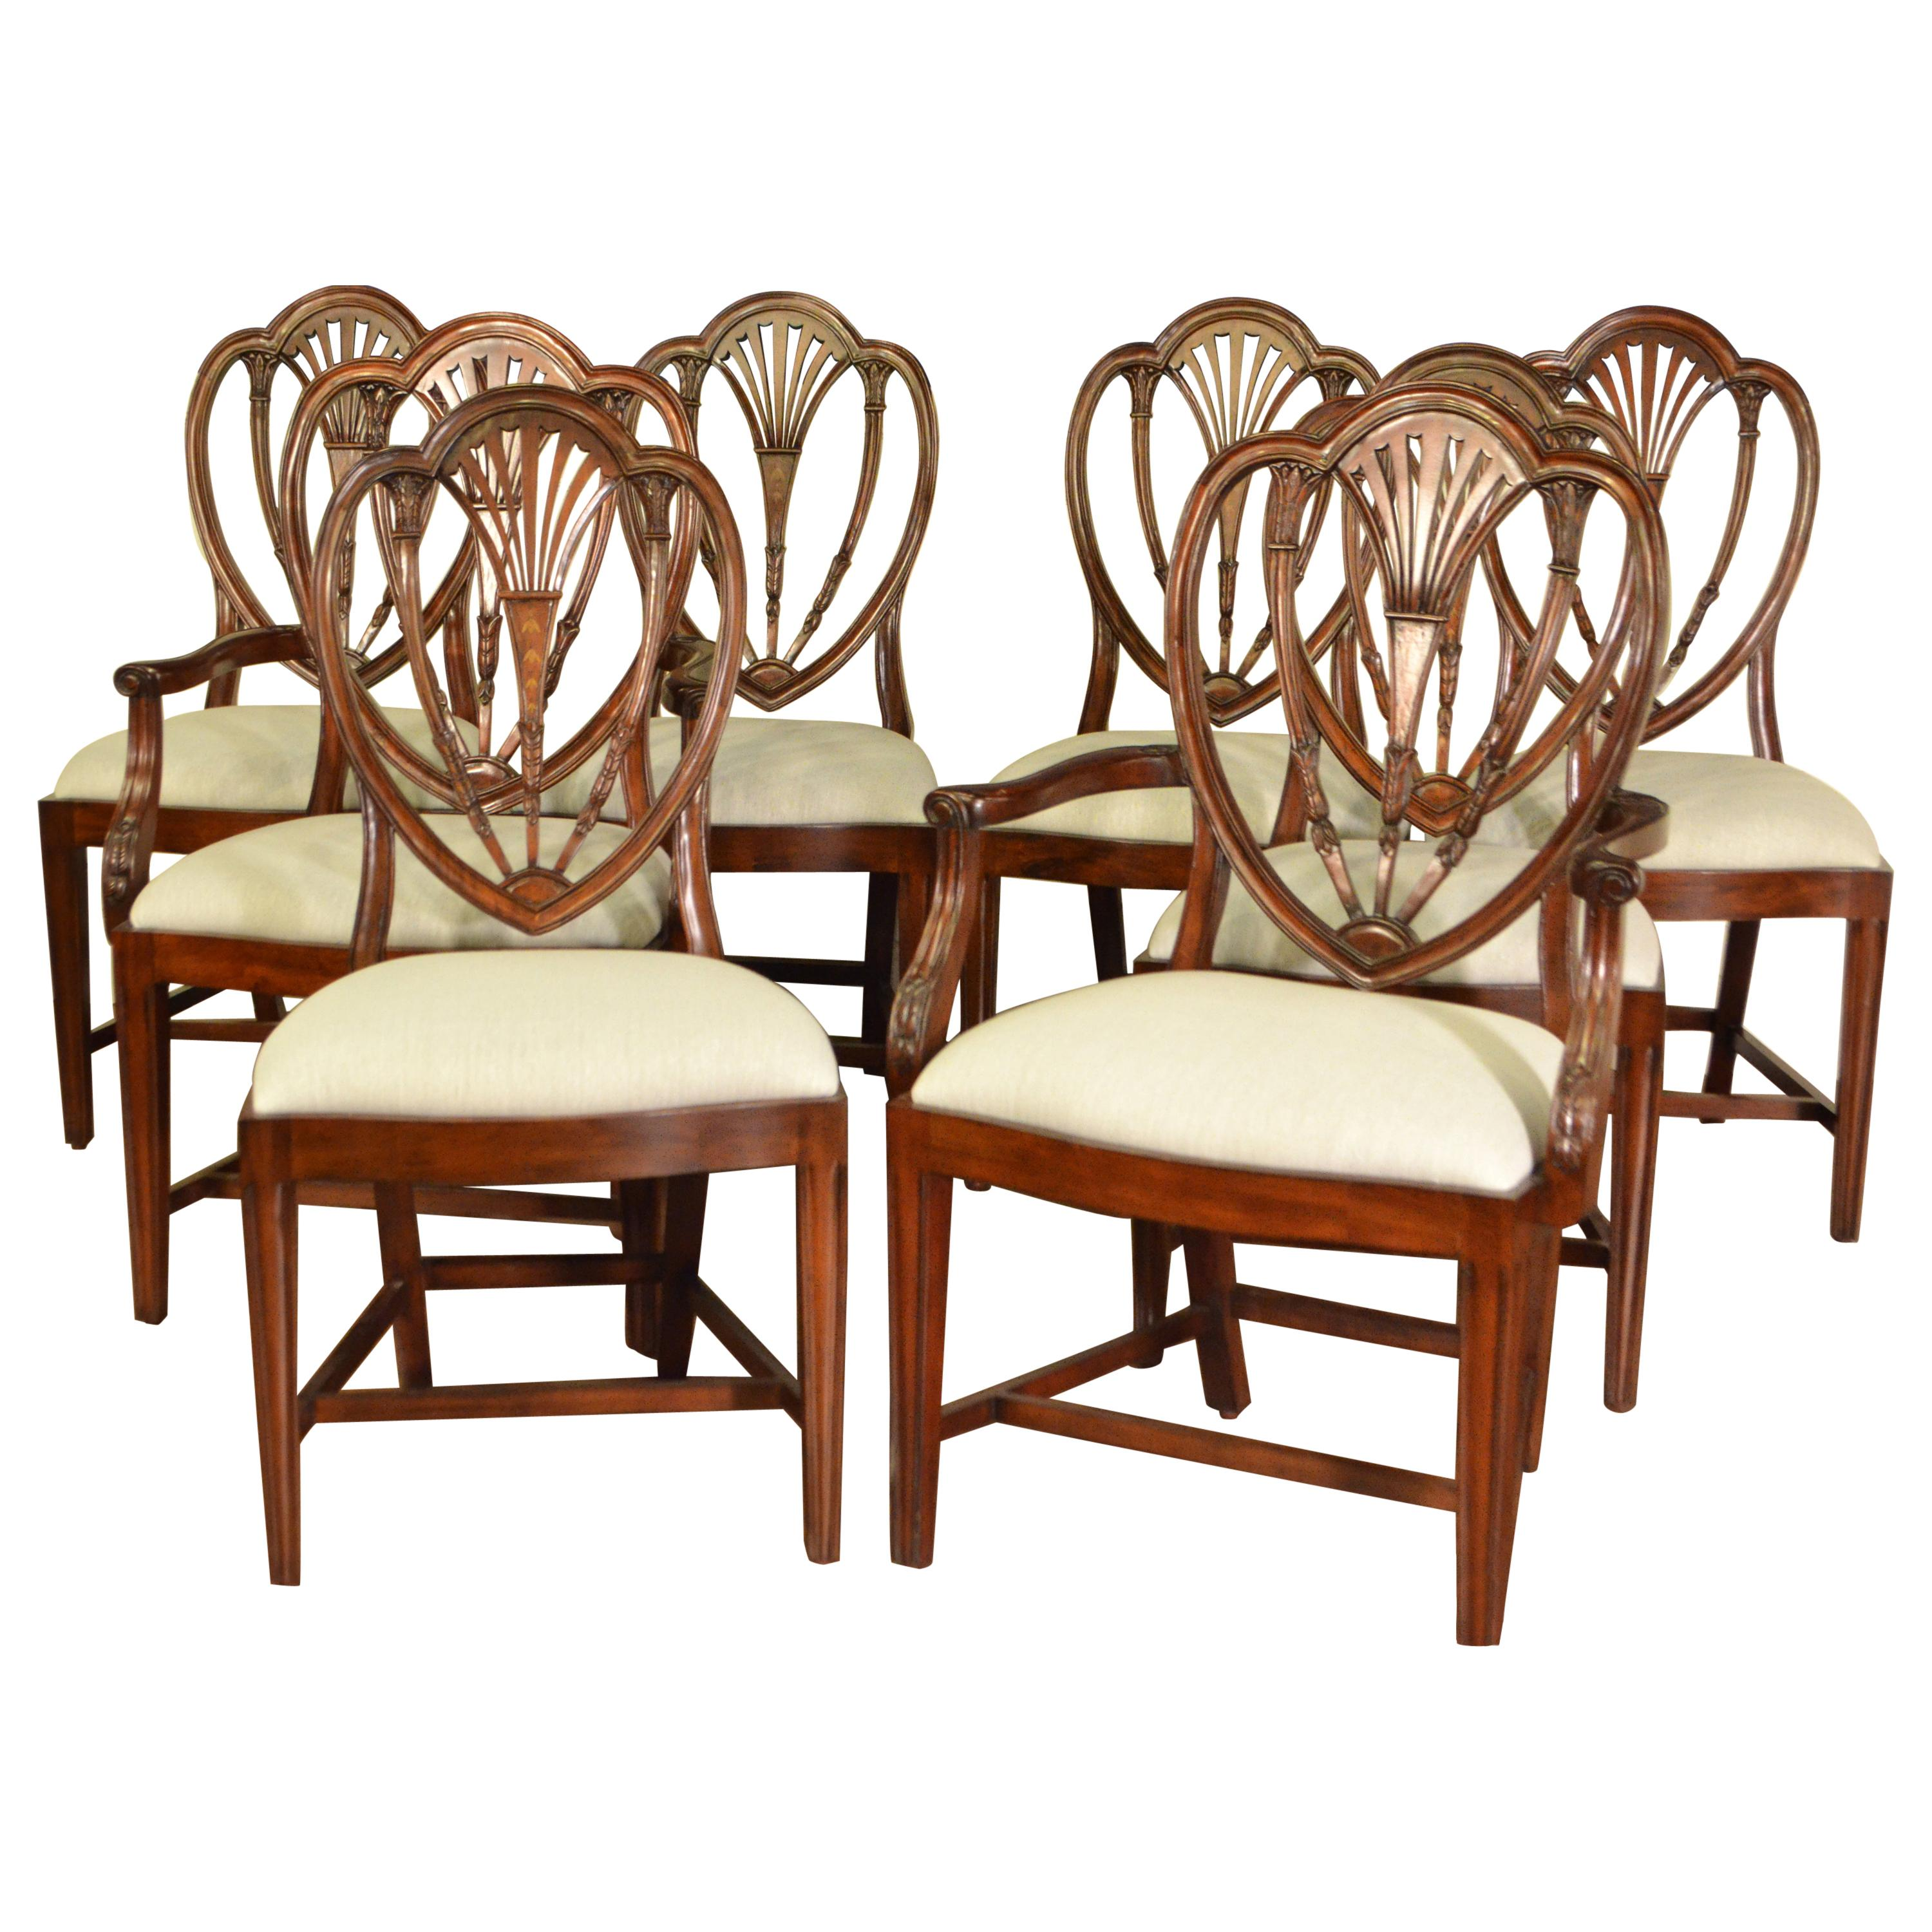 Eight New Mahogany Hepplewhite Style Dining Chairs by Leighton Hall